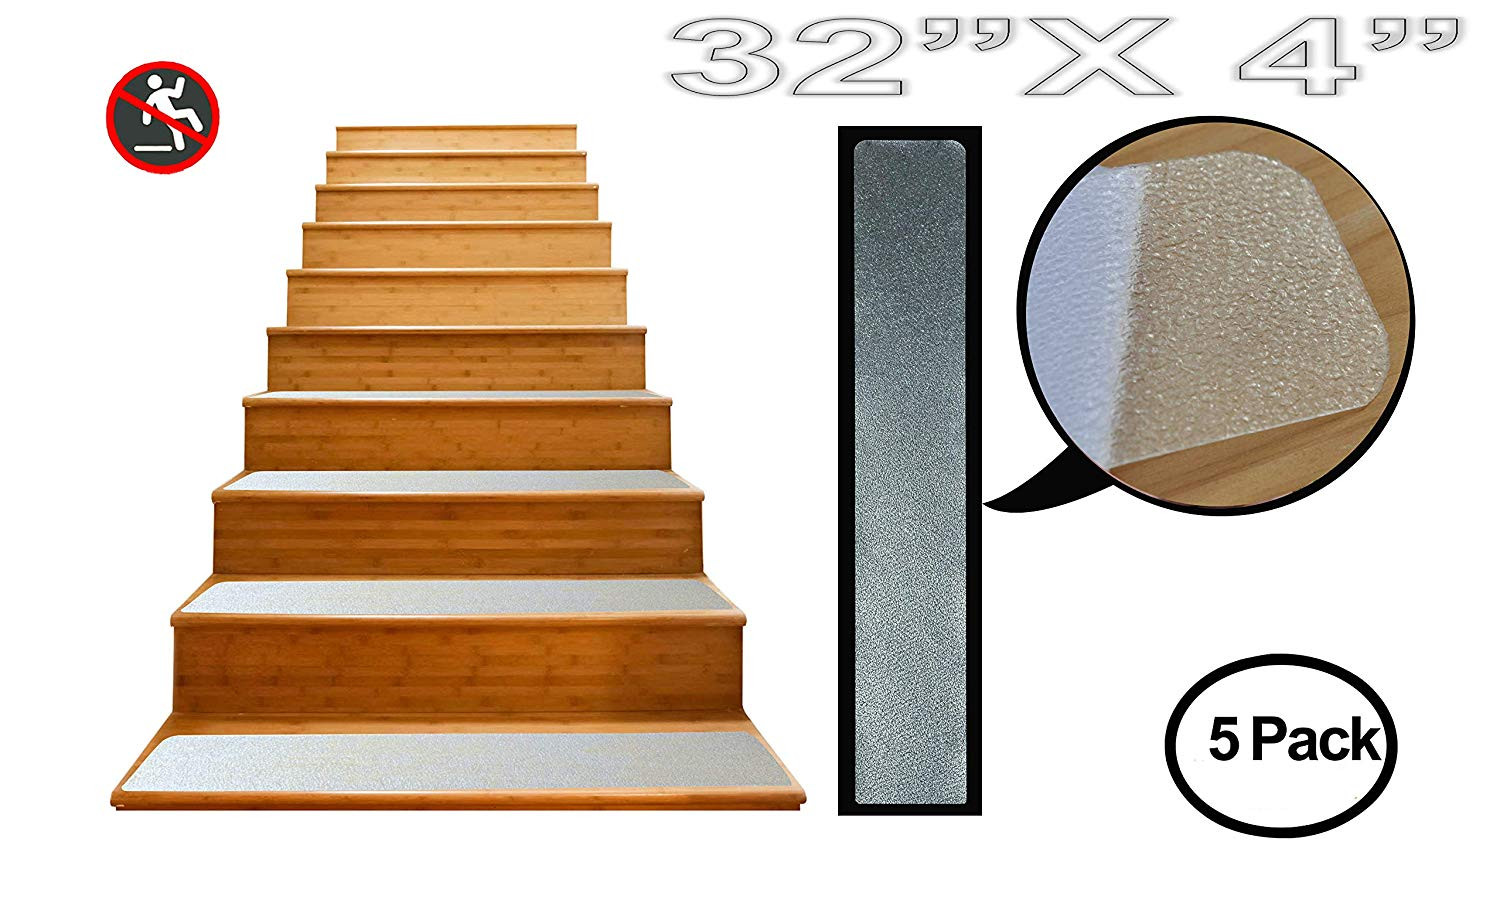 hardwood floor stairs slippery of non slip stair treads tape 12 pack pre cut clear anti slip rubber throughout non slip stair treads tape 12 pack pre cut clear anti slip rubber adhesive grip safety strips for indoor and outdoor steps 4x32 rounded corners